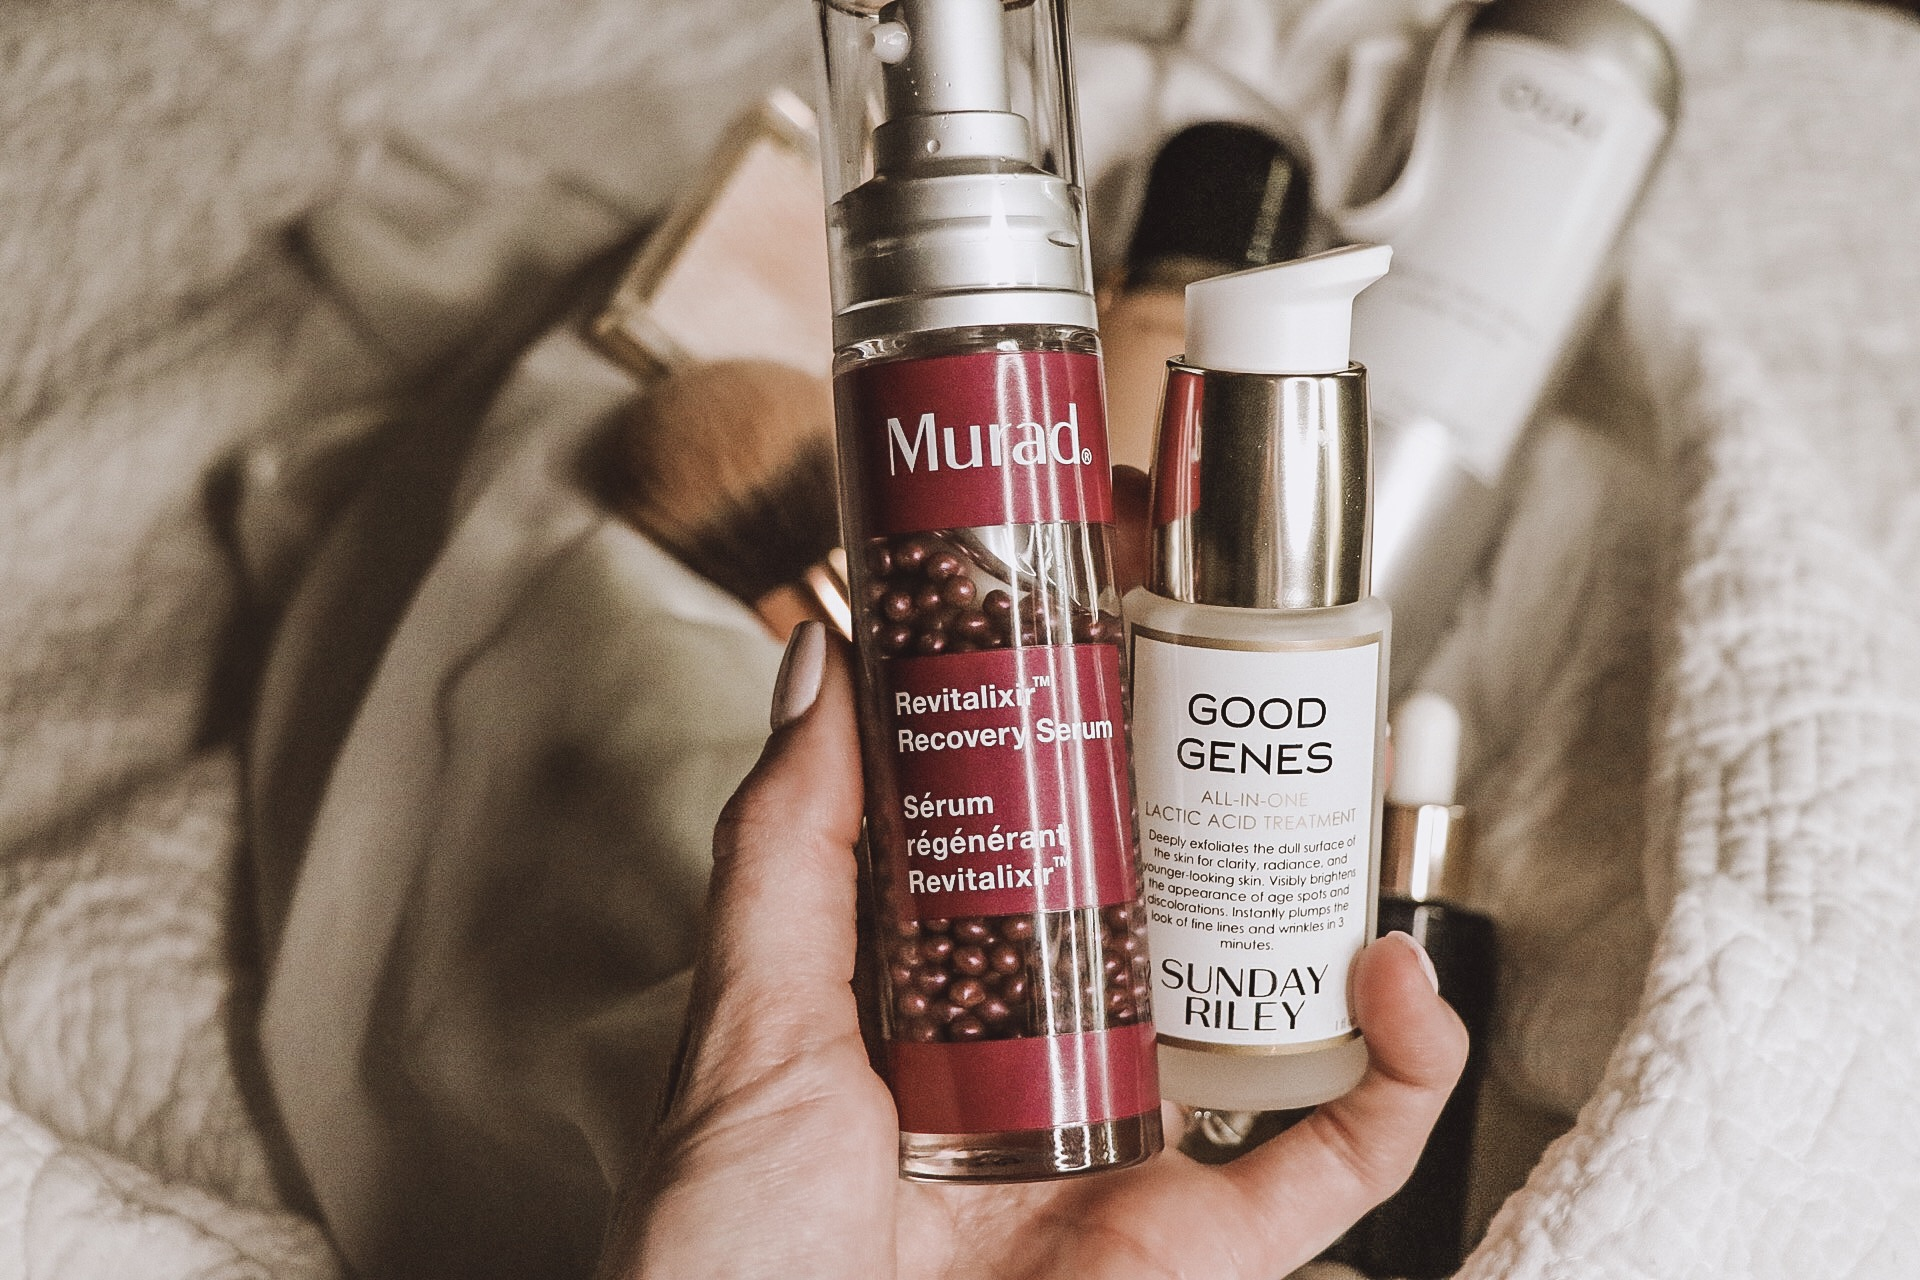 Treat Your Skin! - My Fav Finds for Better Skin!